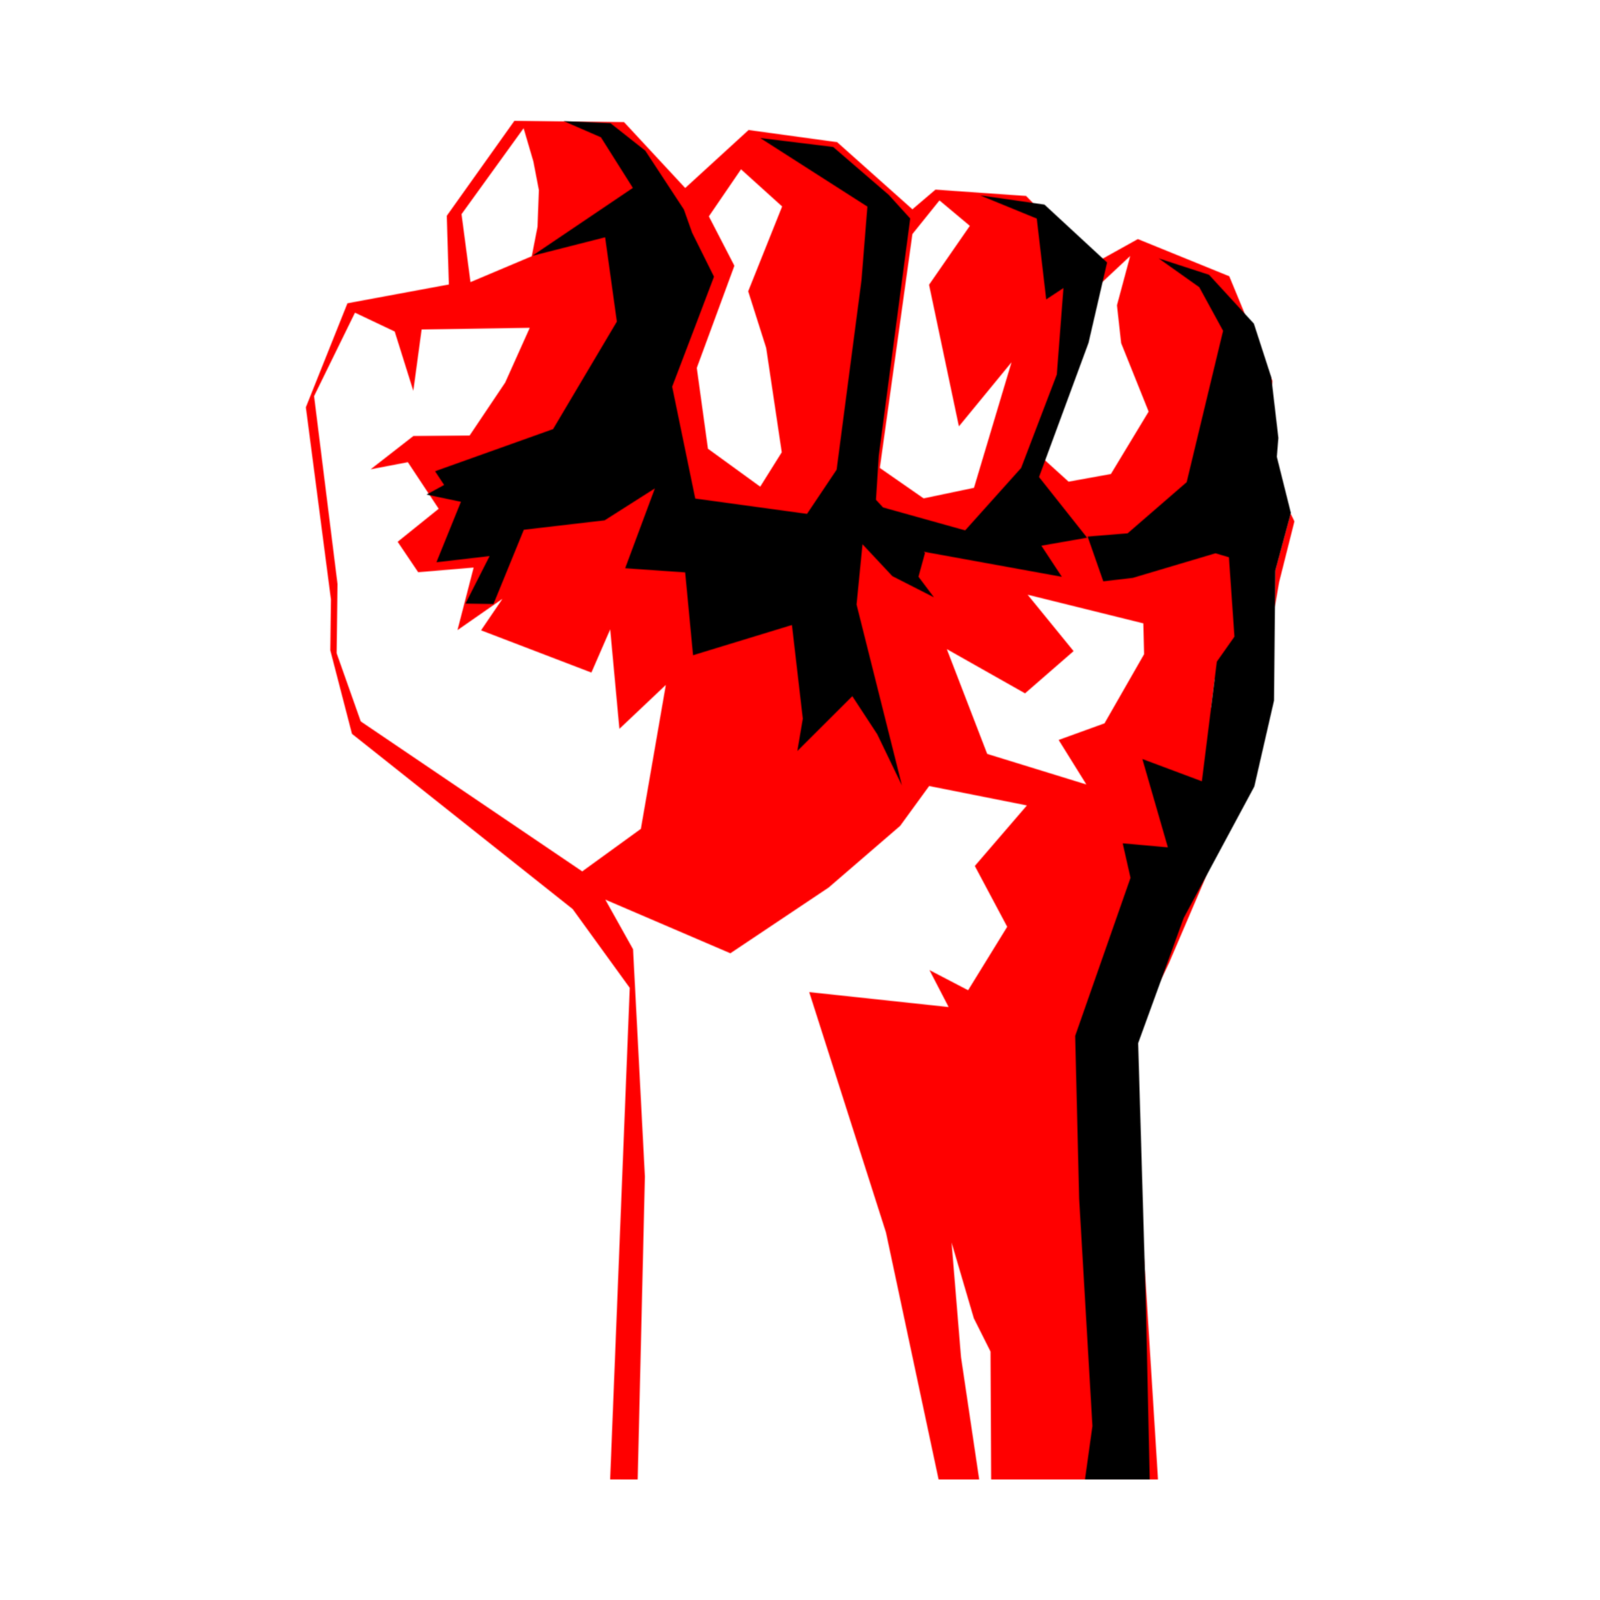 Fist clipart ally. Free download clip art